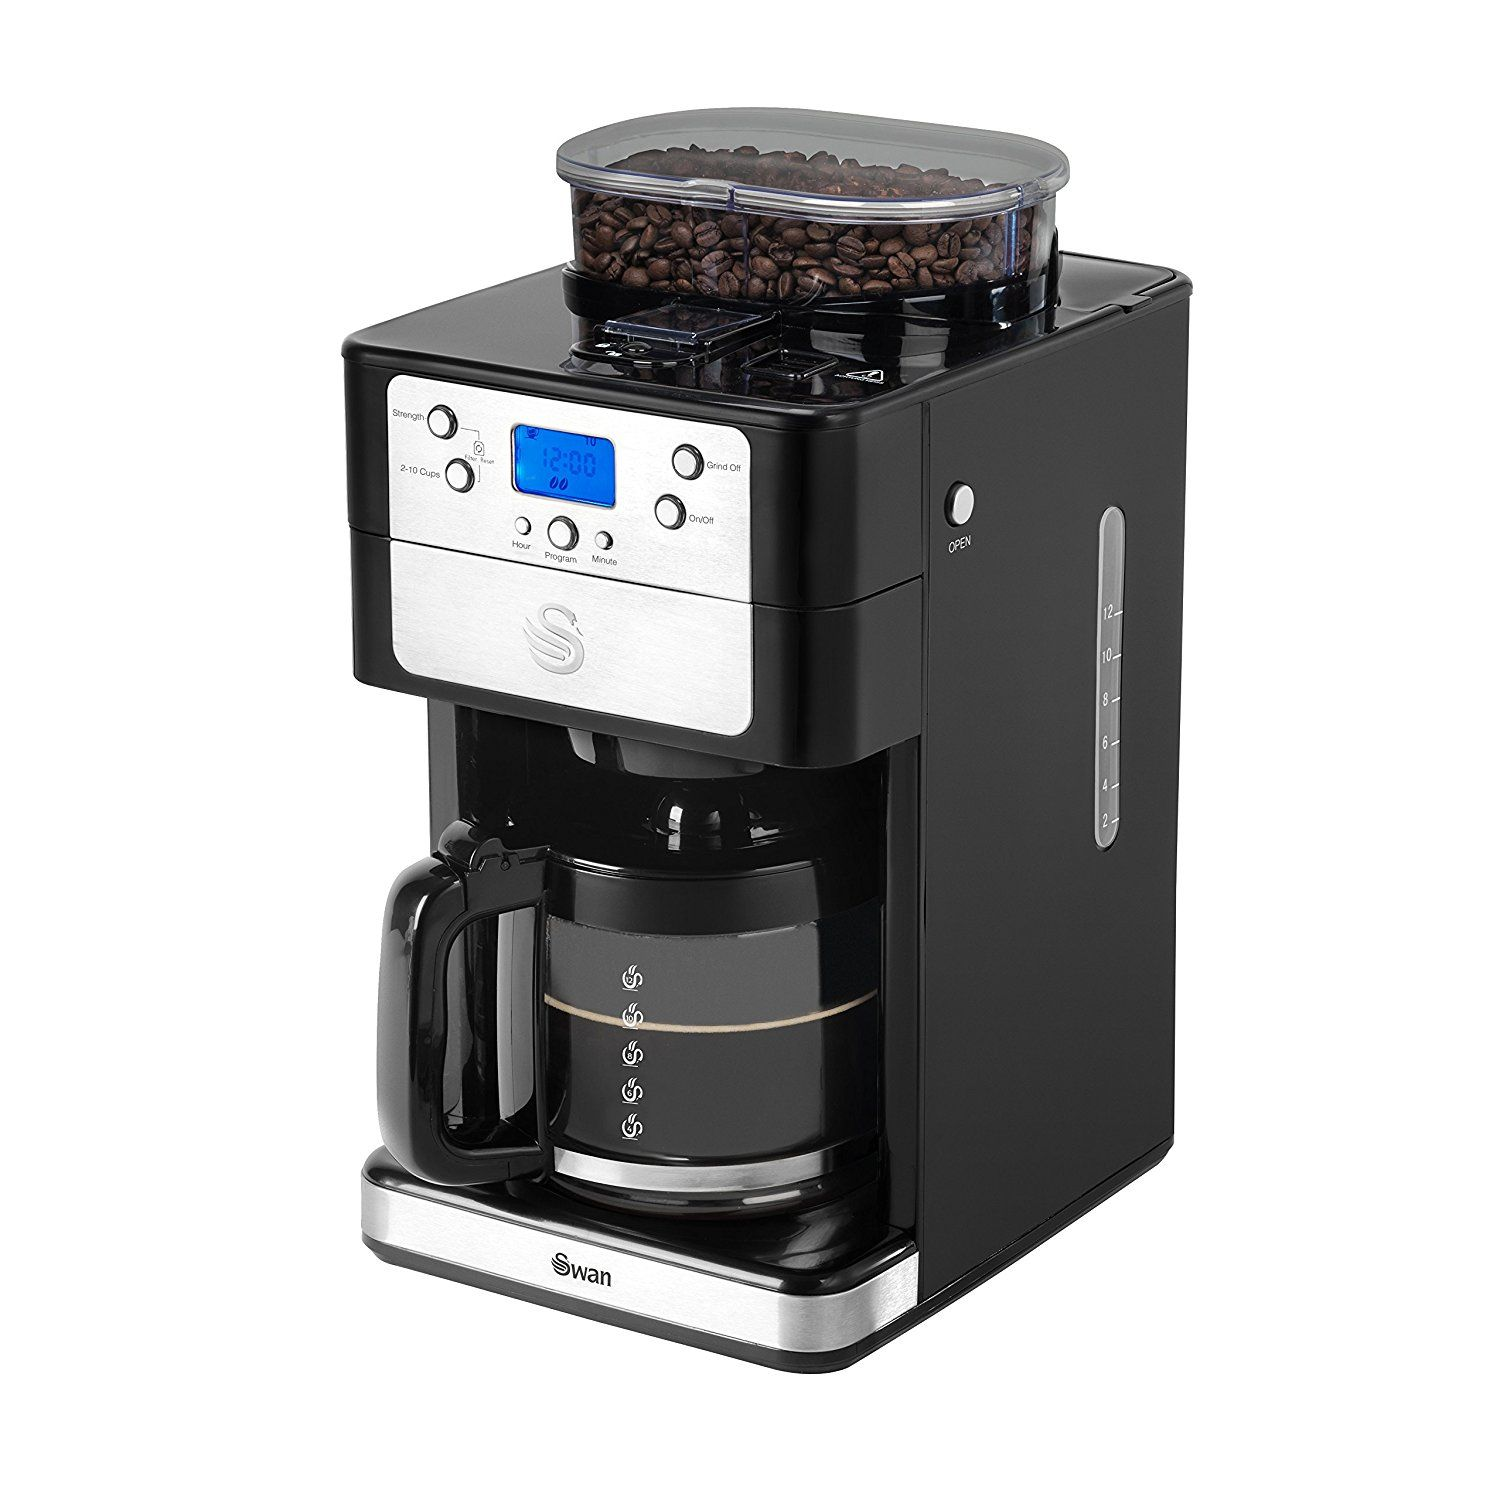 Swan Bean to Cup Coffee Maker, 1.25 Litre Coffee maker